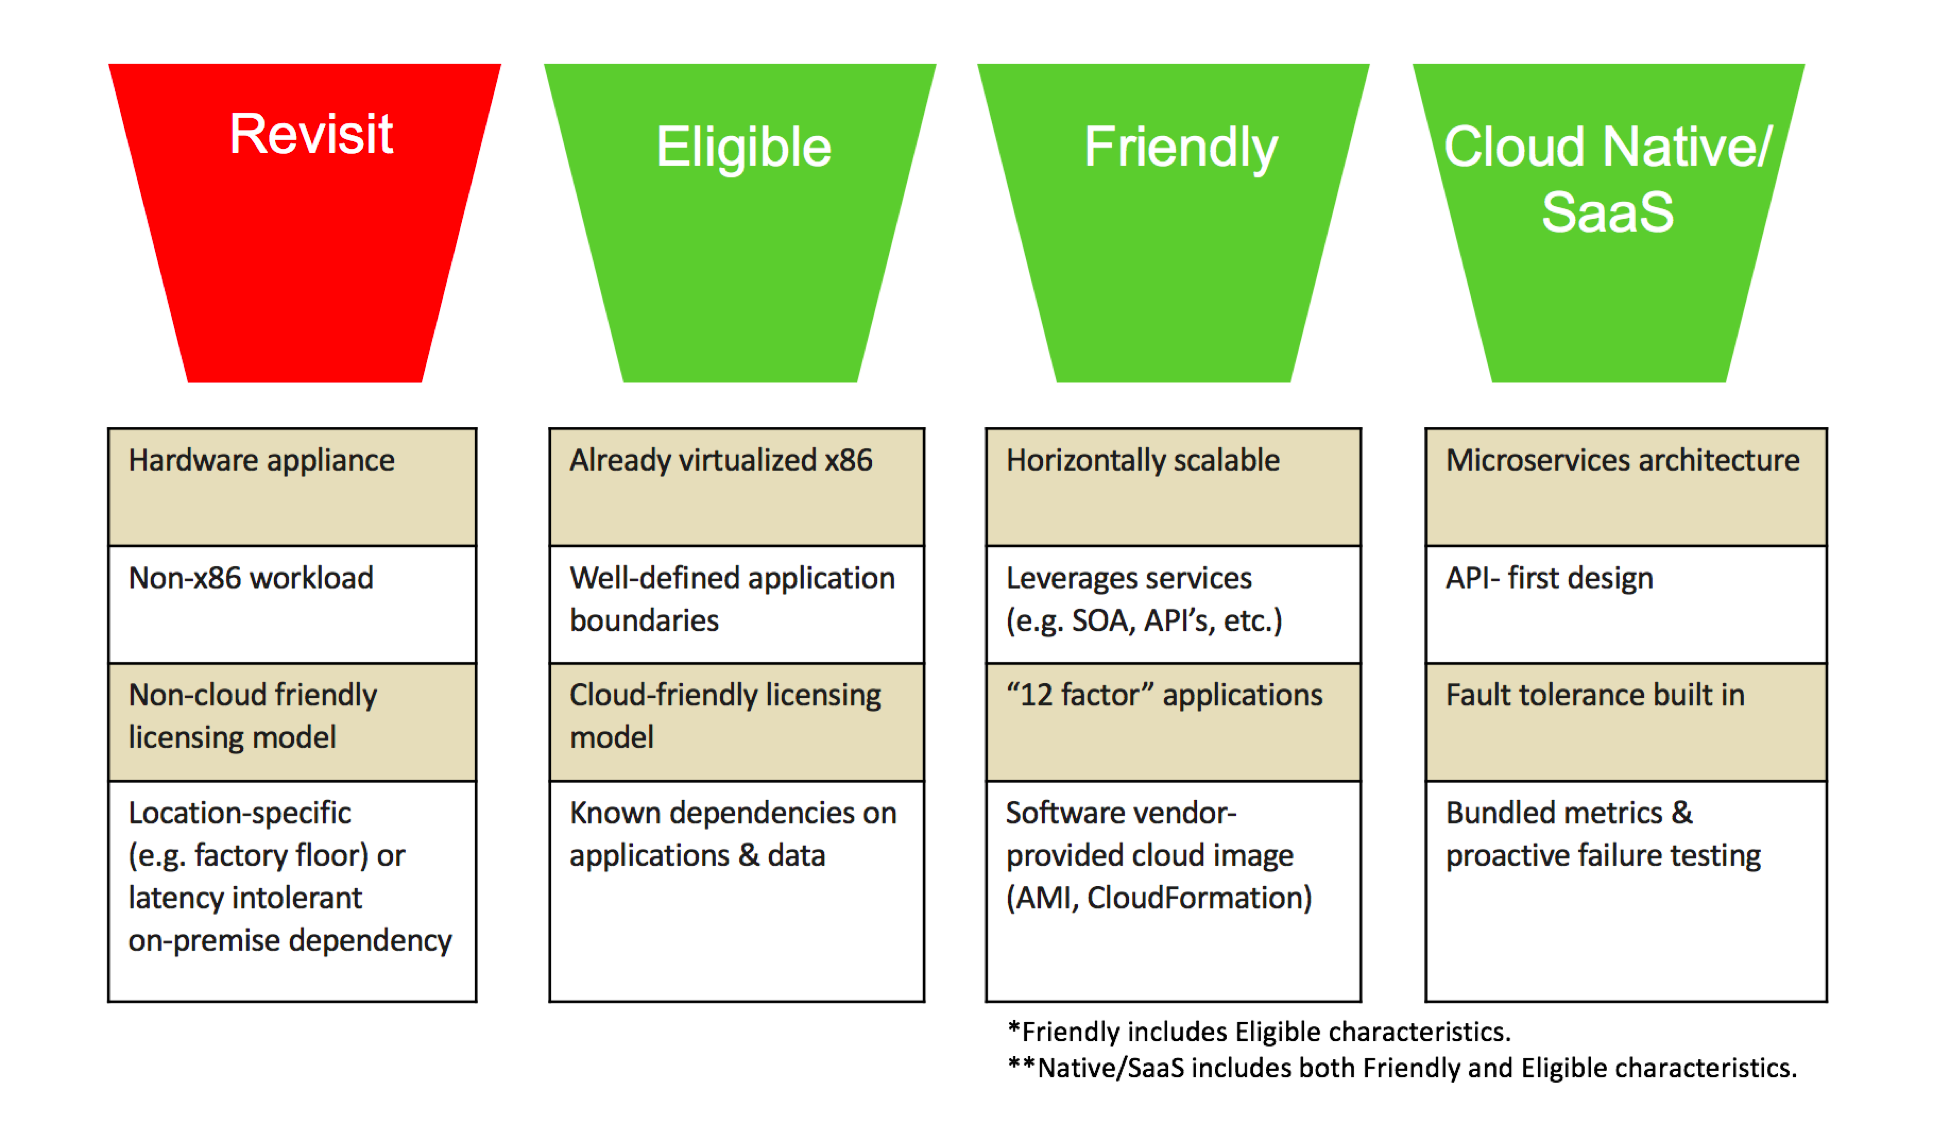 3 Shortcuts to Accelerate Your Cloud Migration and IT Portfolio Analysis